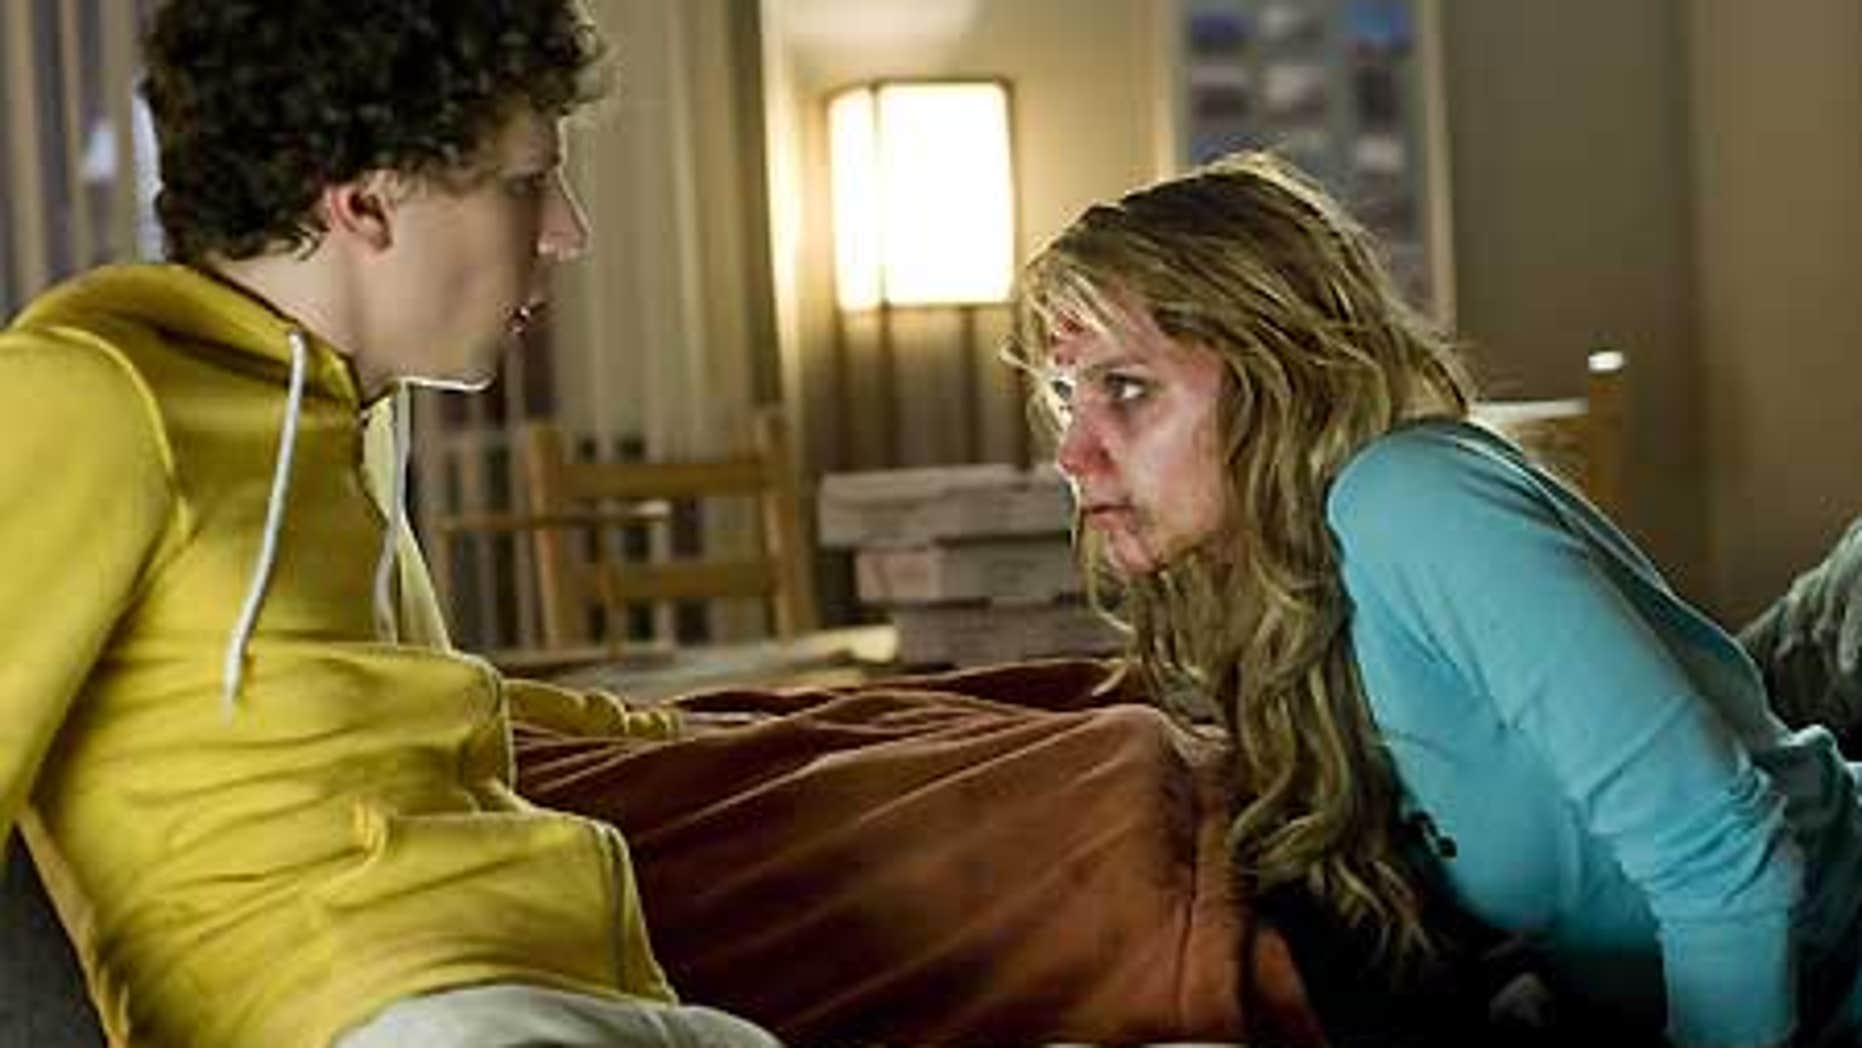 """In this film publicity image released by Columbia Pictures, Jesse Eisenberg, left, and Amber Heard are shown in a scene from, """"Zombieland."""""""